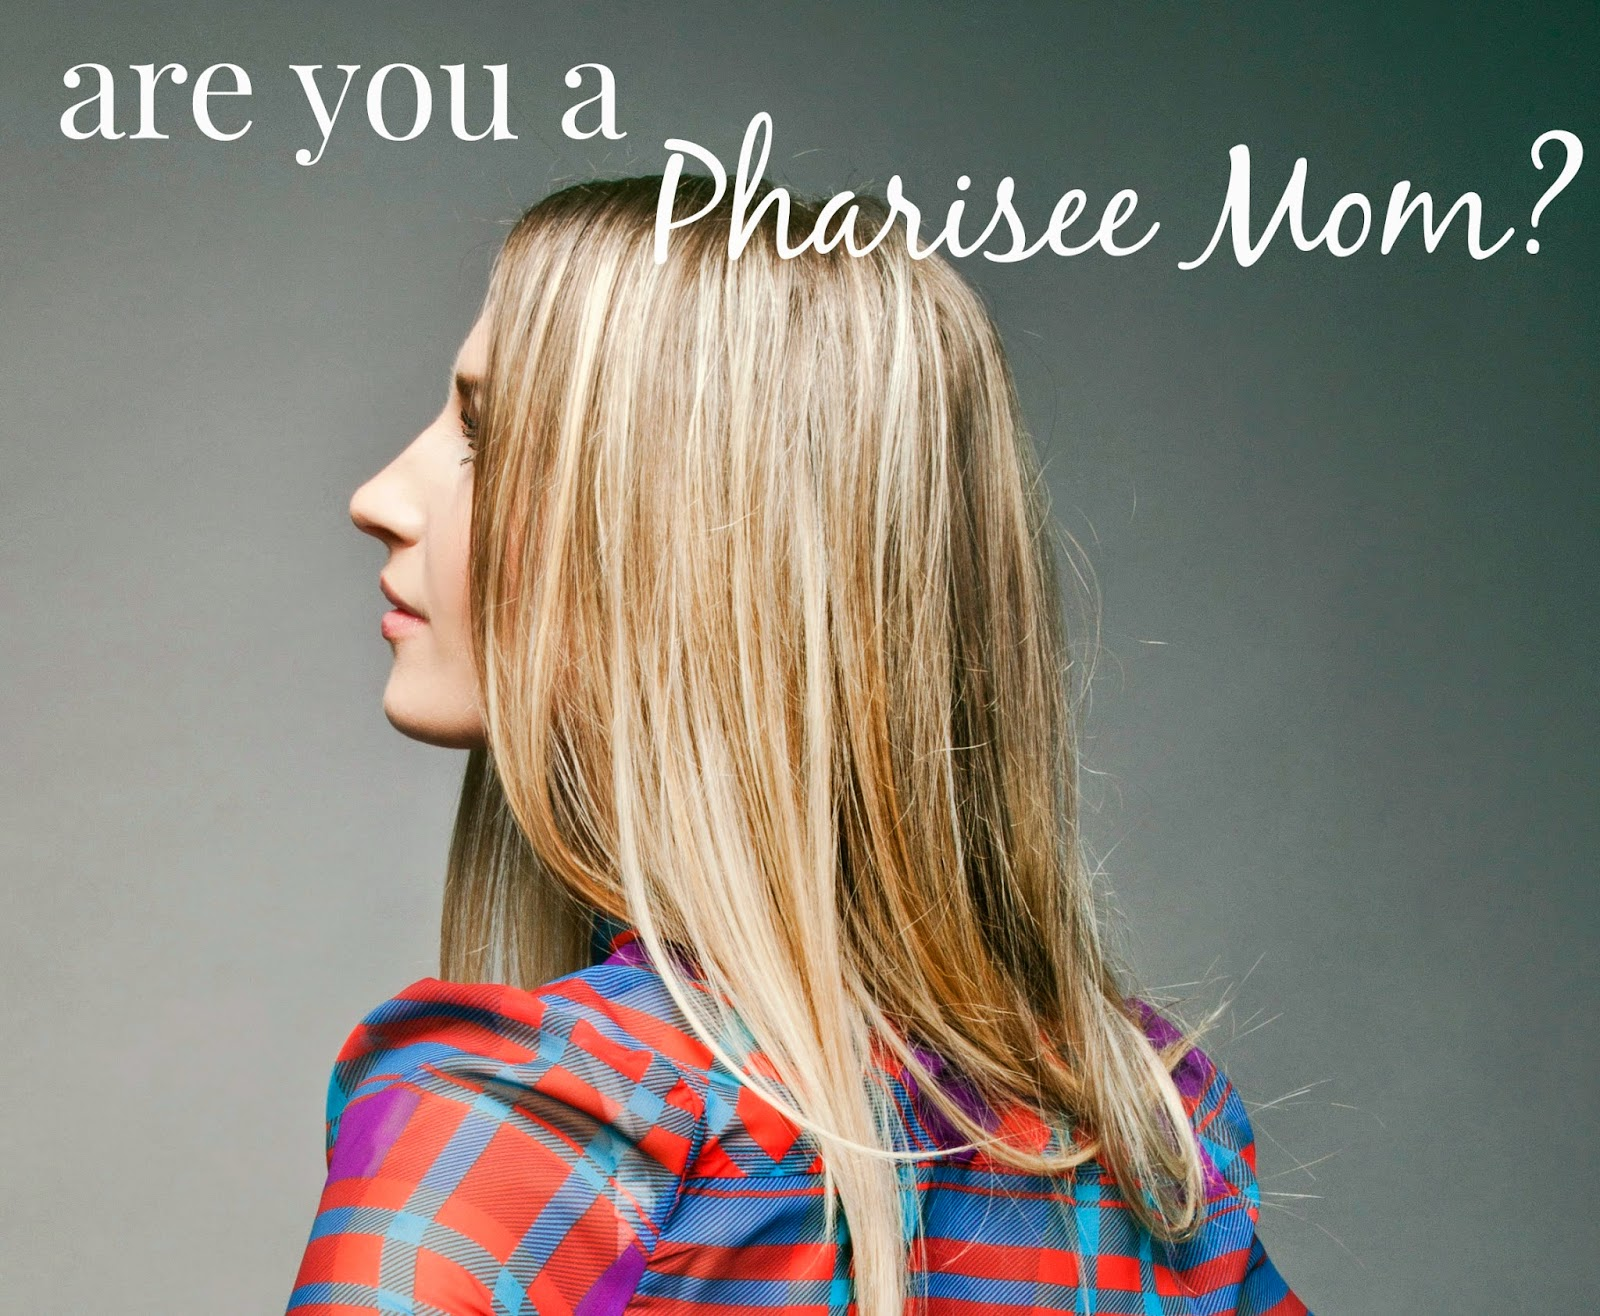 Are you a Pharisee Mom? [from the jensens blog]